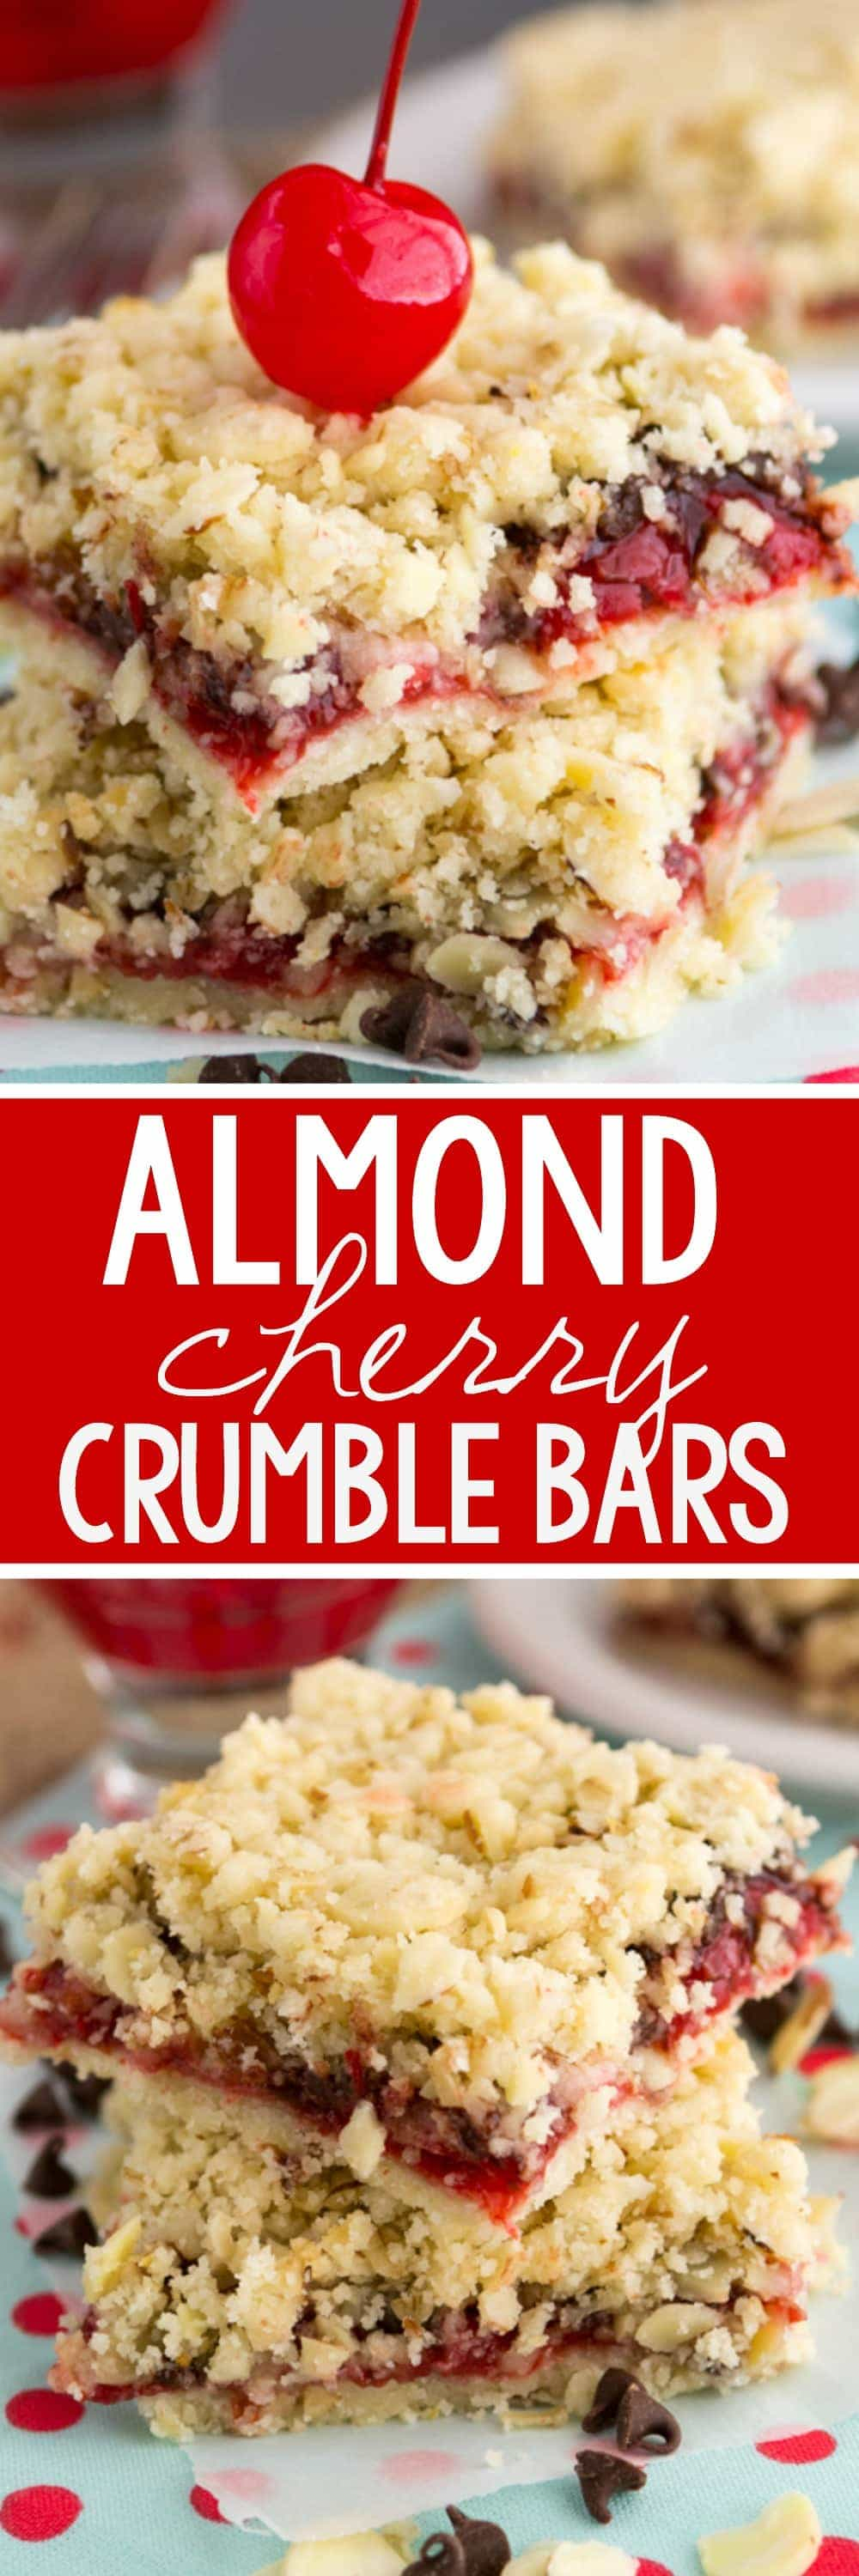 Almond Chocolate Cherry Crumble Bars collage